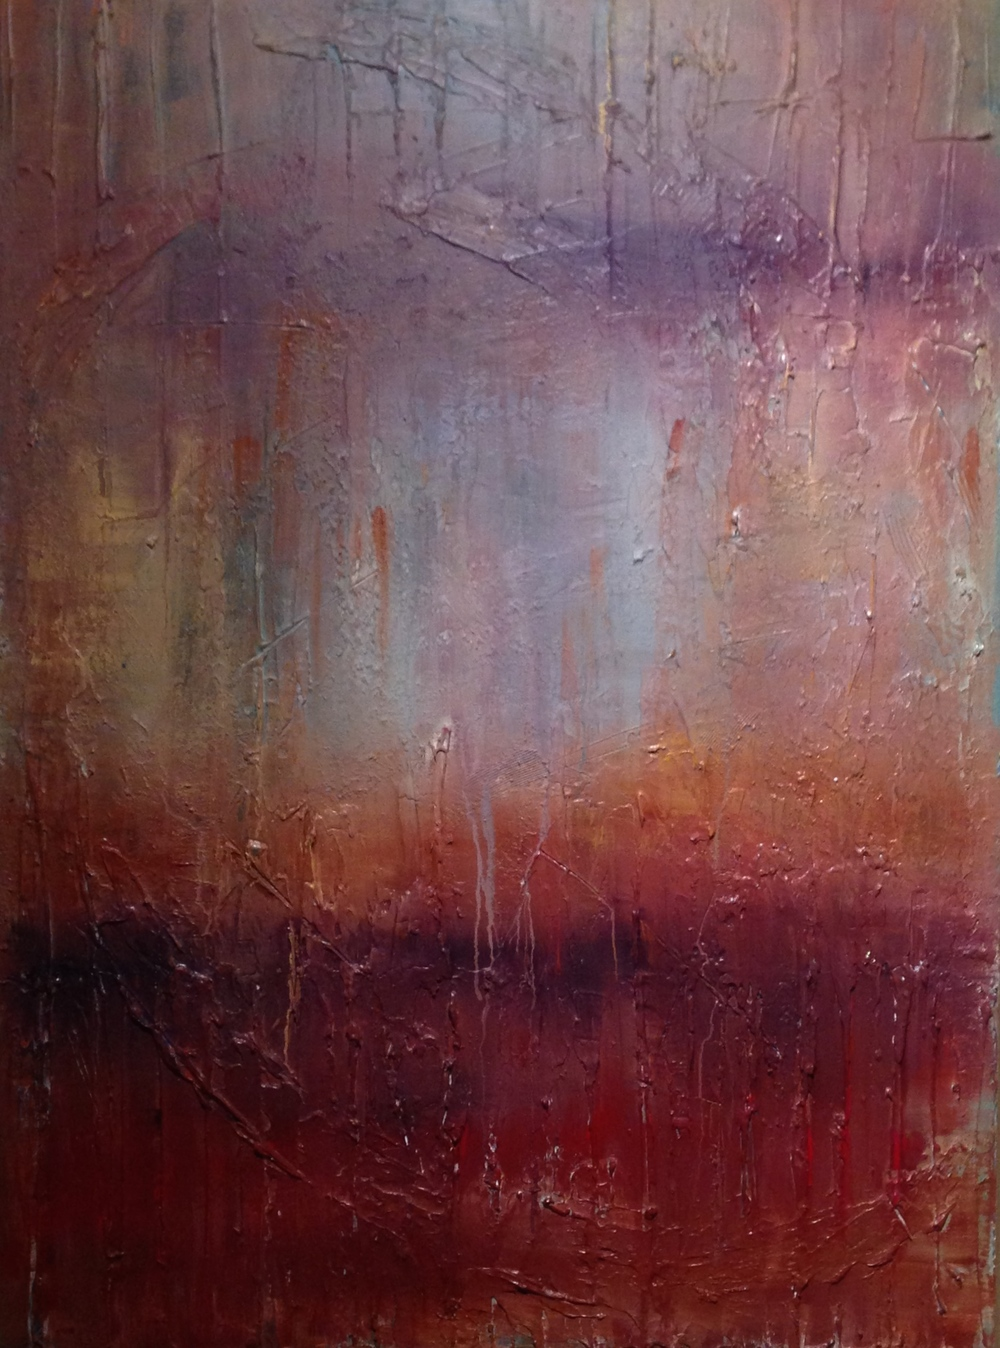 mystique  40 x 30 x 1.5 inches  mixed media on canvas  $3800 USD